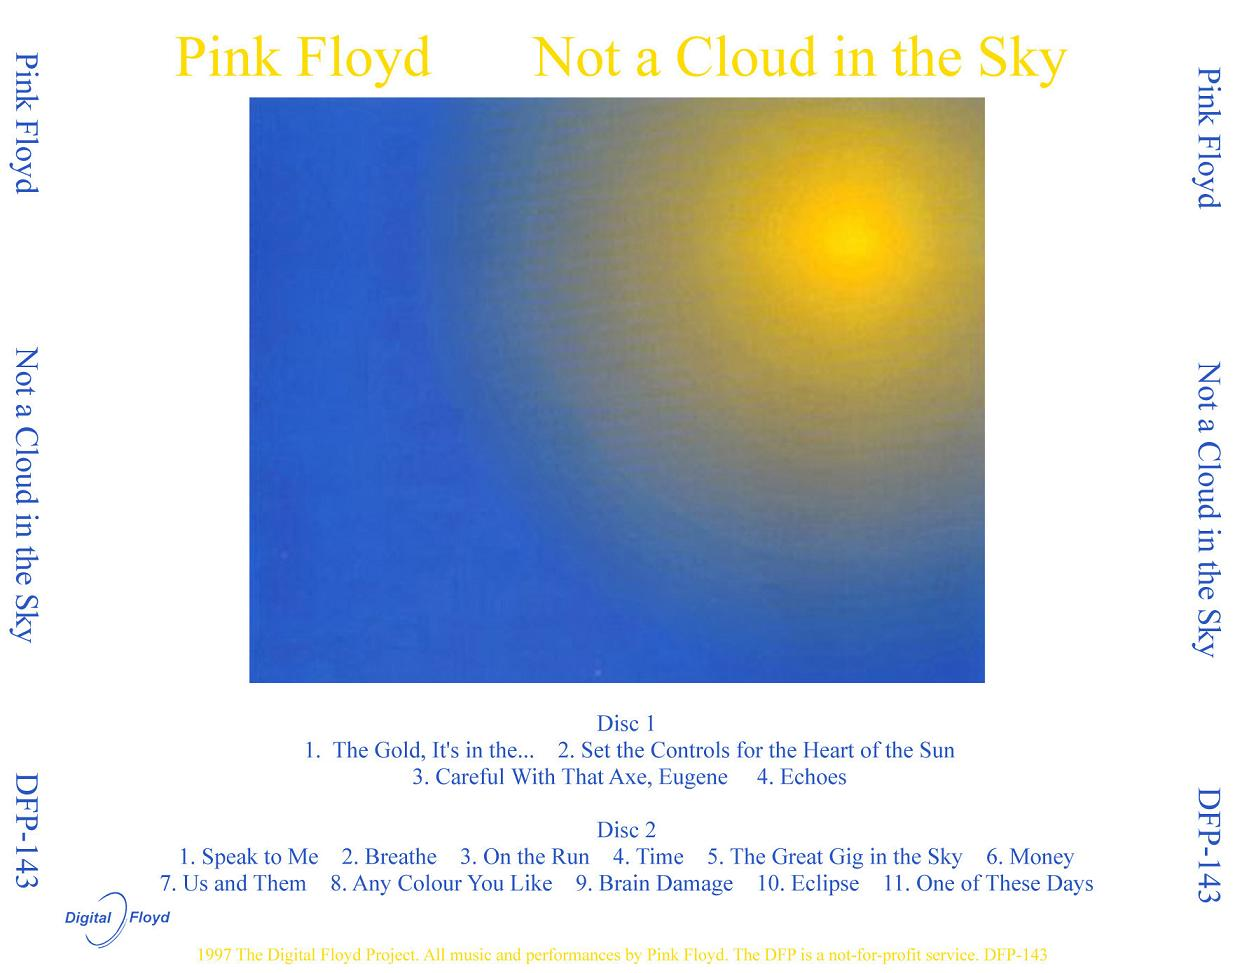 1973-06-28-Not_a_cloud_in_the_sky-back-alt